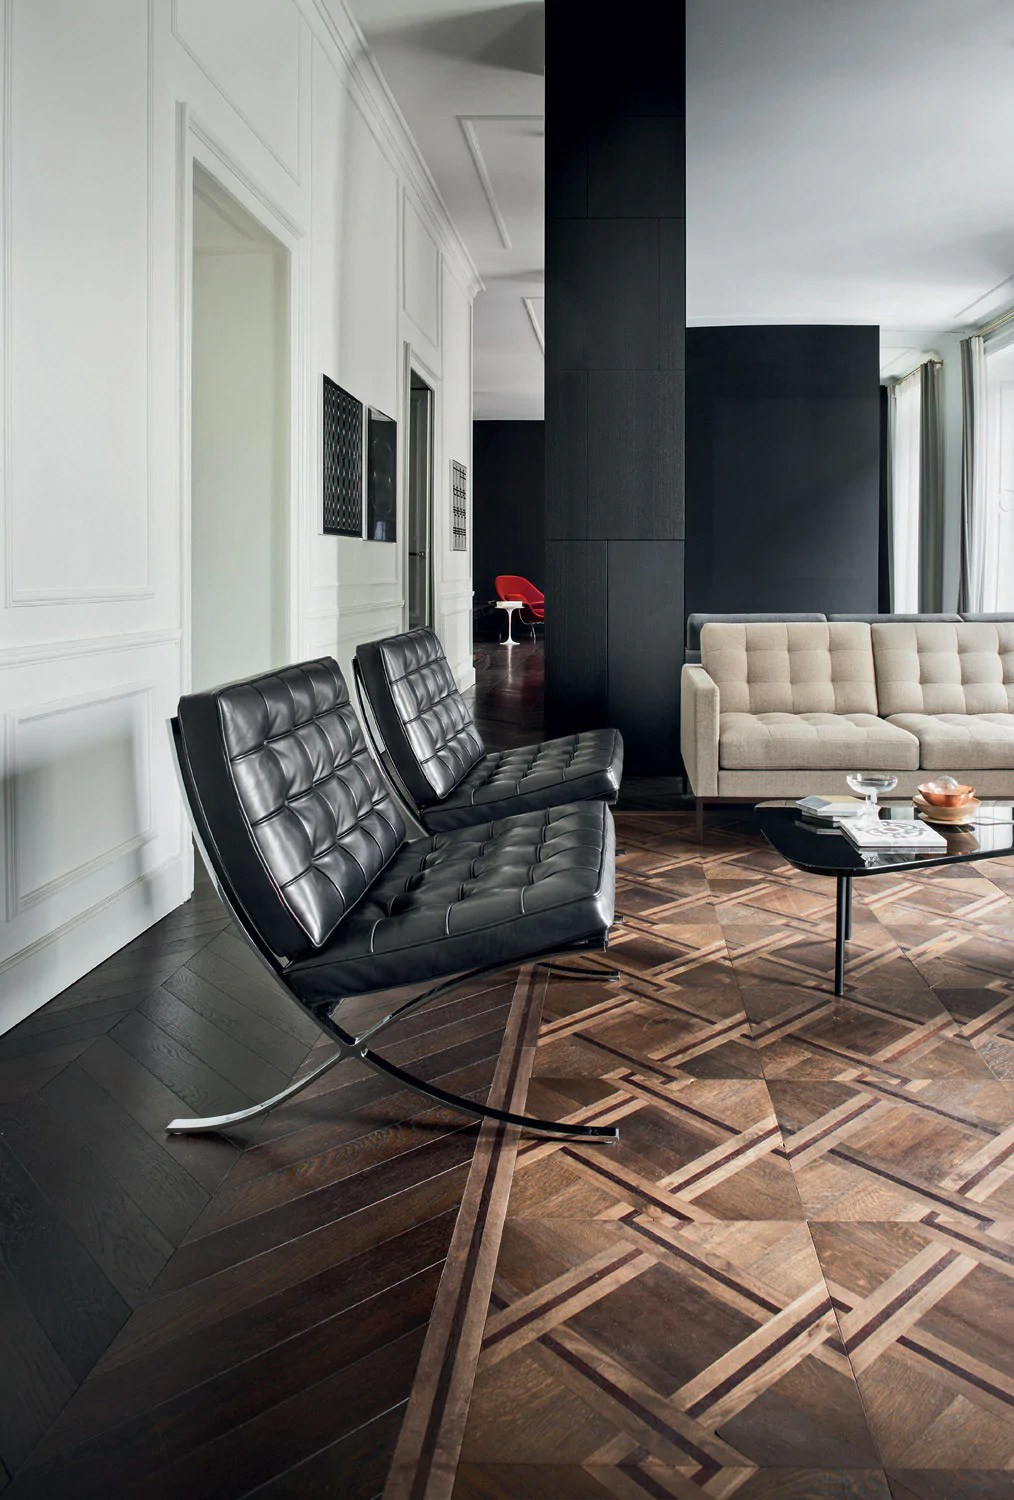 Barcelona Chair Relax  Couch Potato Company